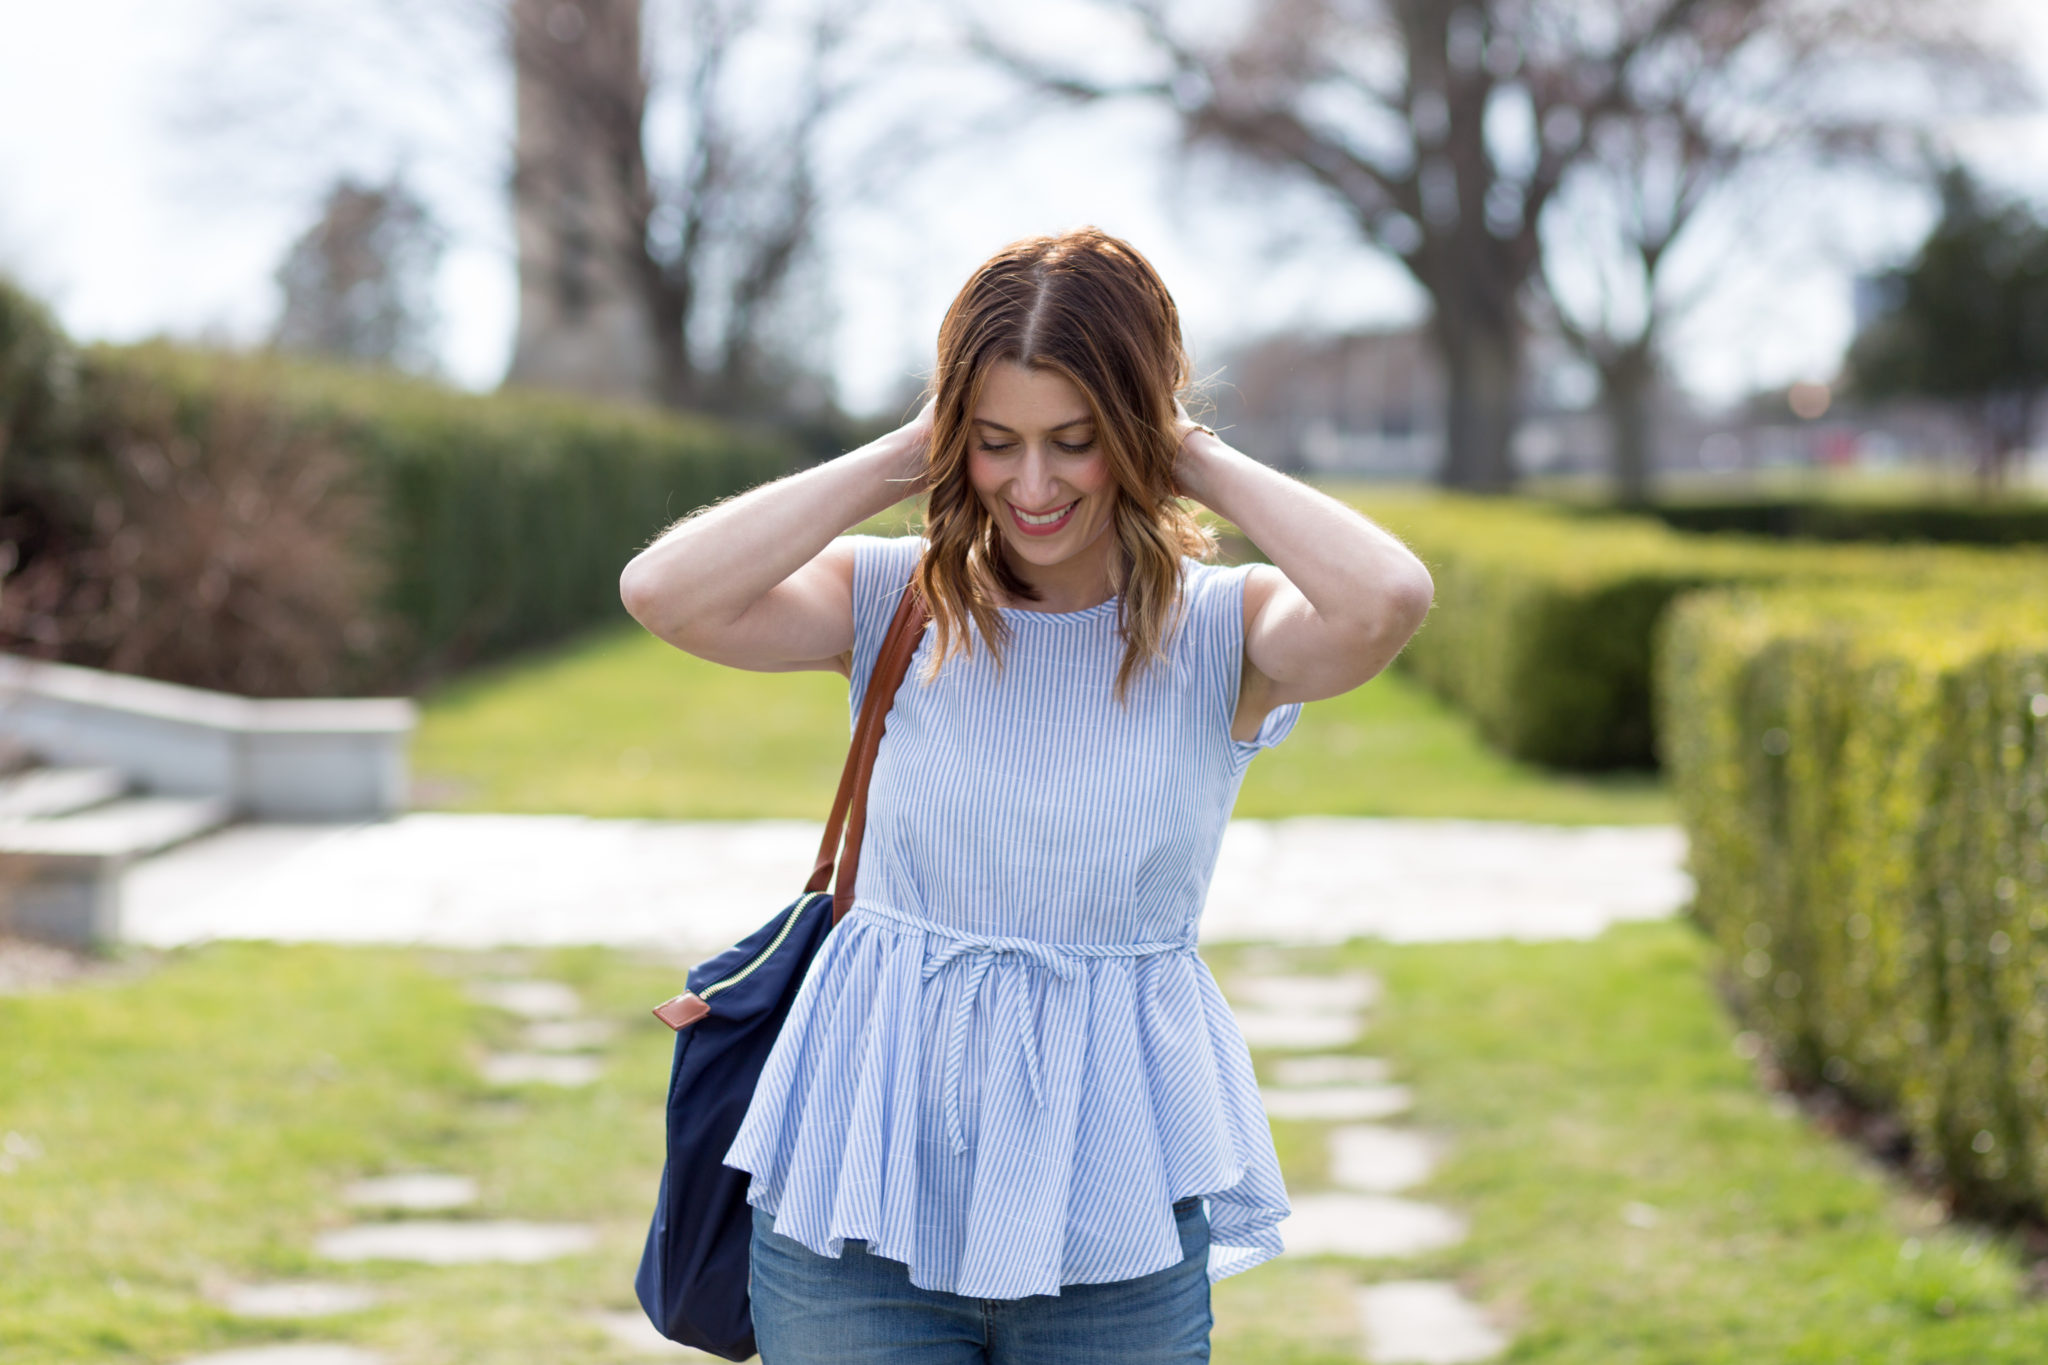 Cute tops for spring | Peplum style tops | Ruffle tops | How to style clogs for spring | SheIn Blue Vertical Striped Self Tie Ruffle Hem Blouse on allweareblog.com